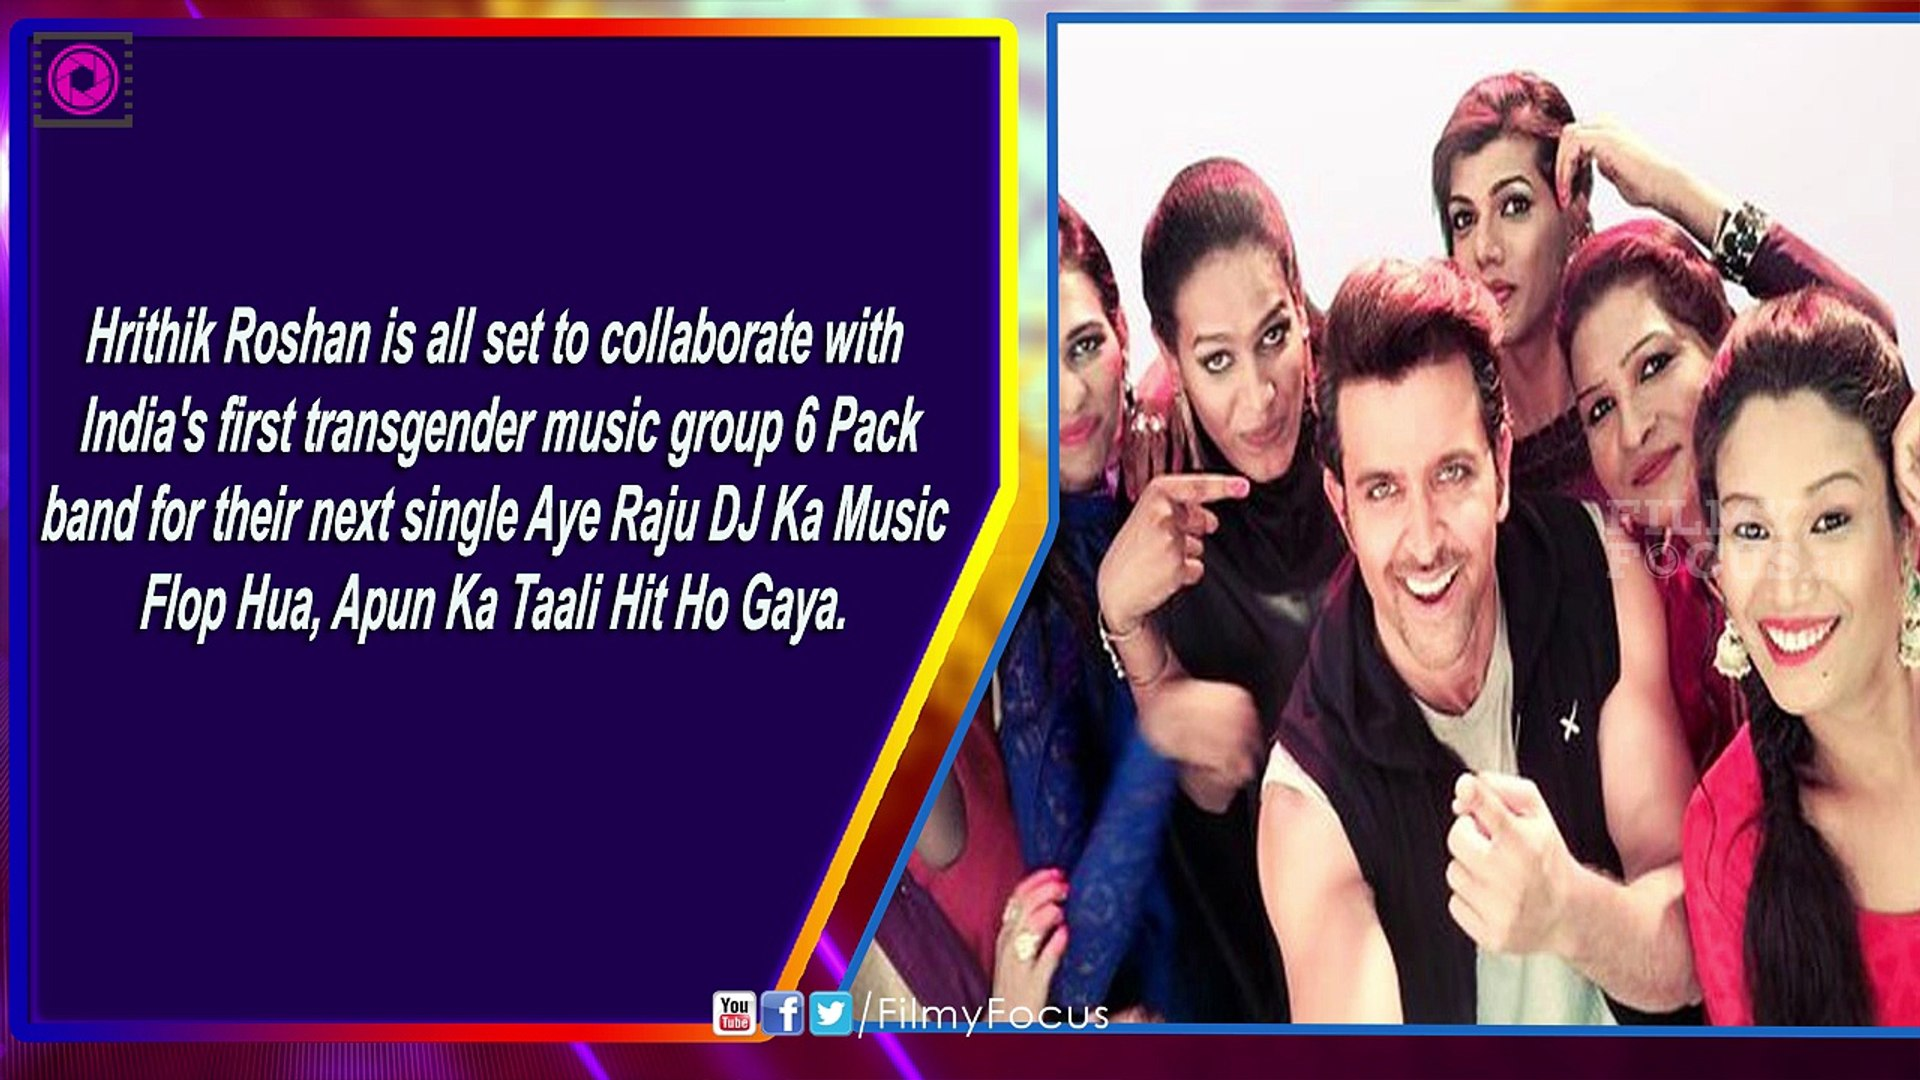 Hrithik Roshan Joins Hands With 6 Pack Band - Filmyfocus.com